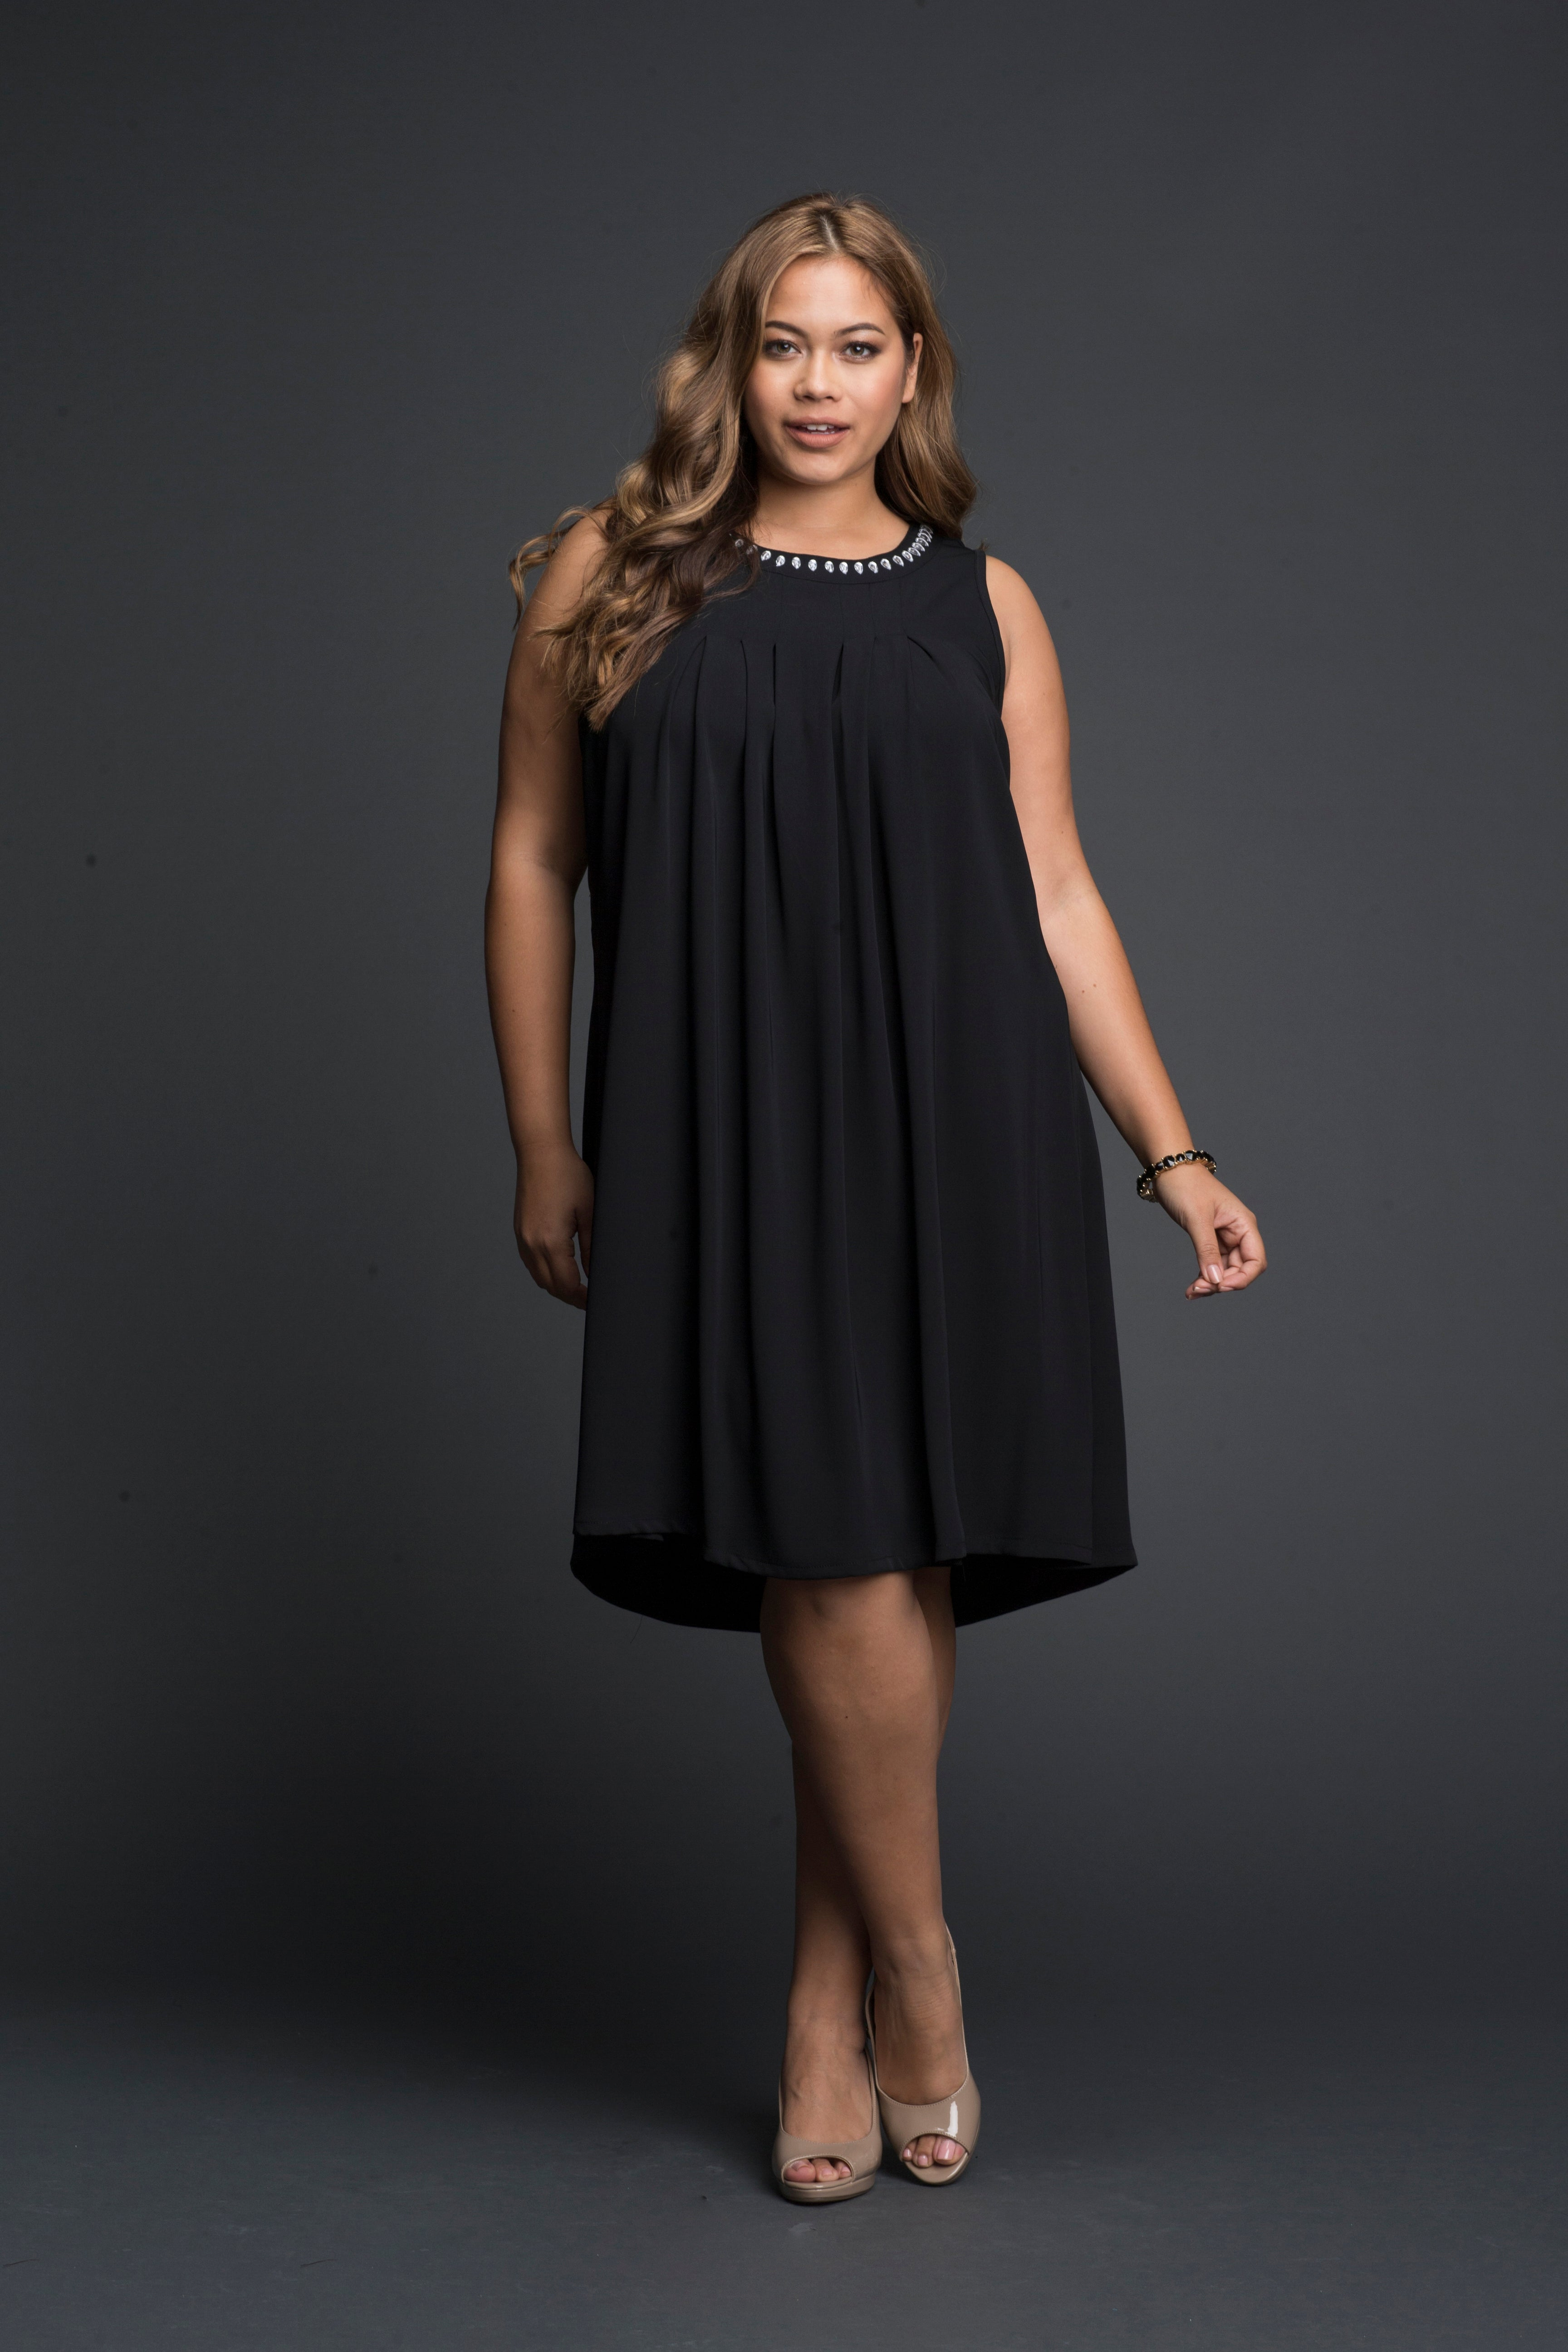 Plus Size Petite Cocktail Short Pleated Gathered Dress